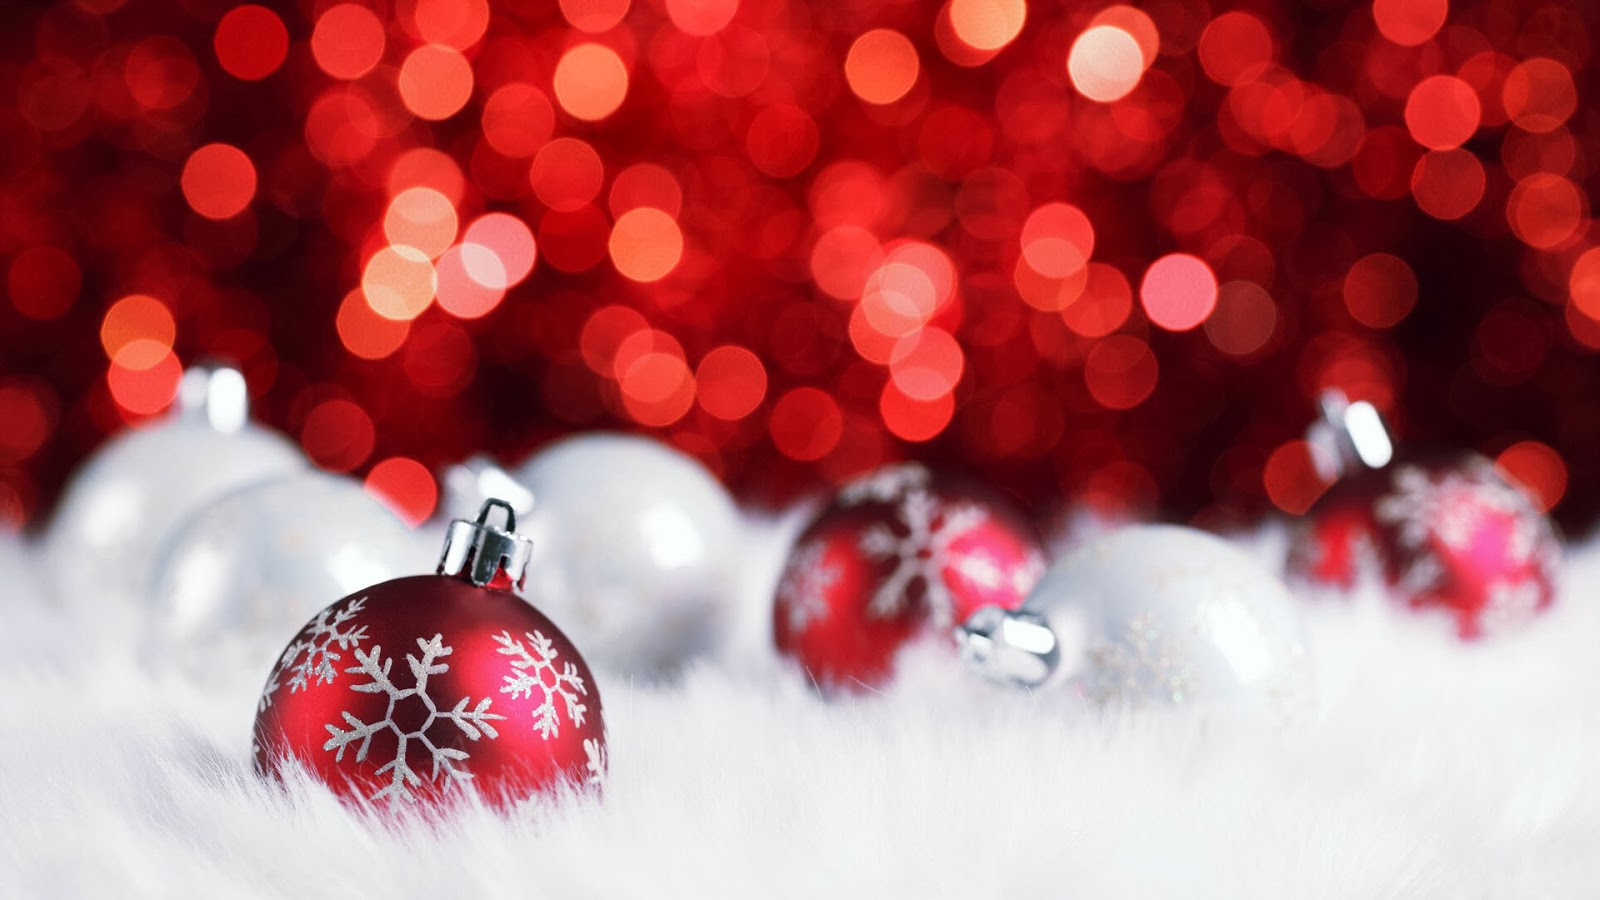 Christmas-Scenes-Wallpapers-Backgrounds